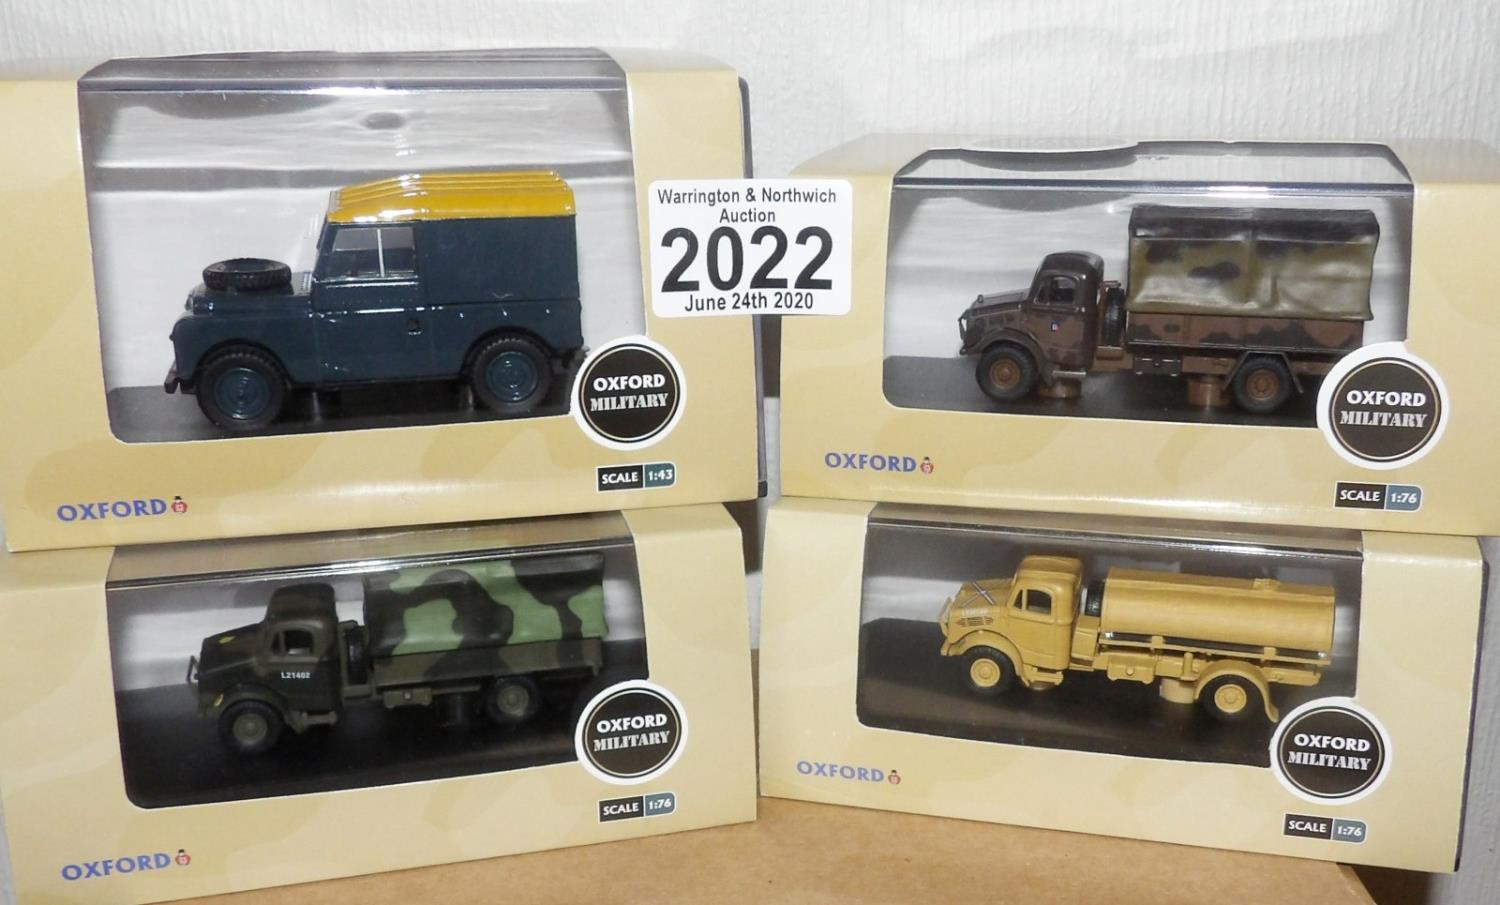 Lot 2022 - Oxford 1.76 Scale x 4 Mixed Military Vehicles. P&P Group 2 (£18+VAT for the first lot and £2+VAT for